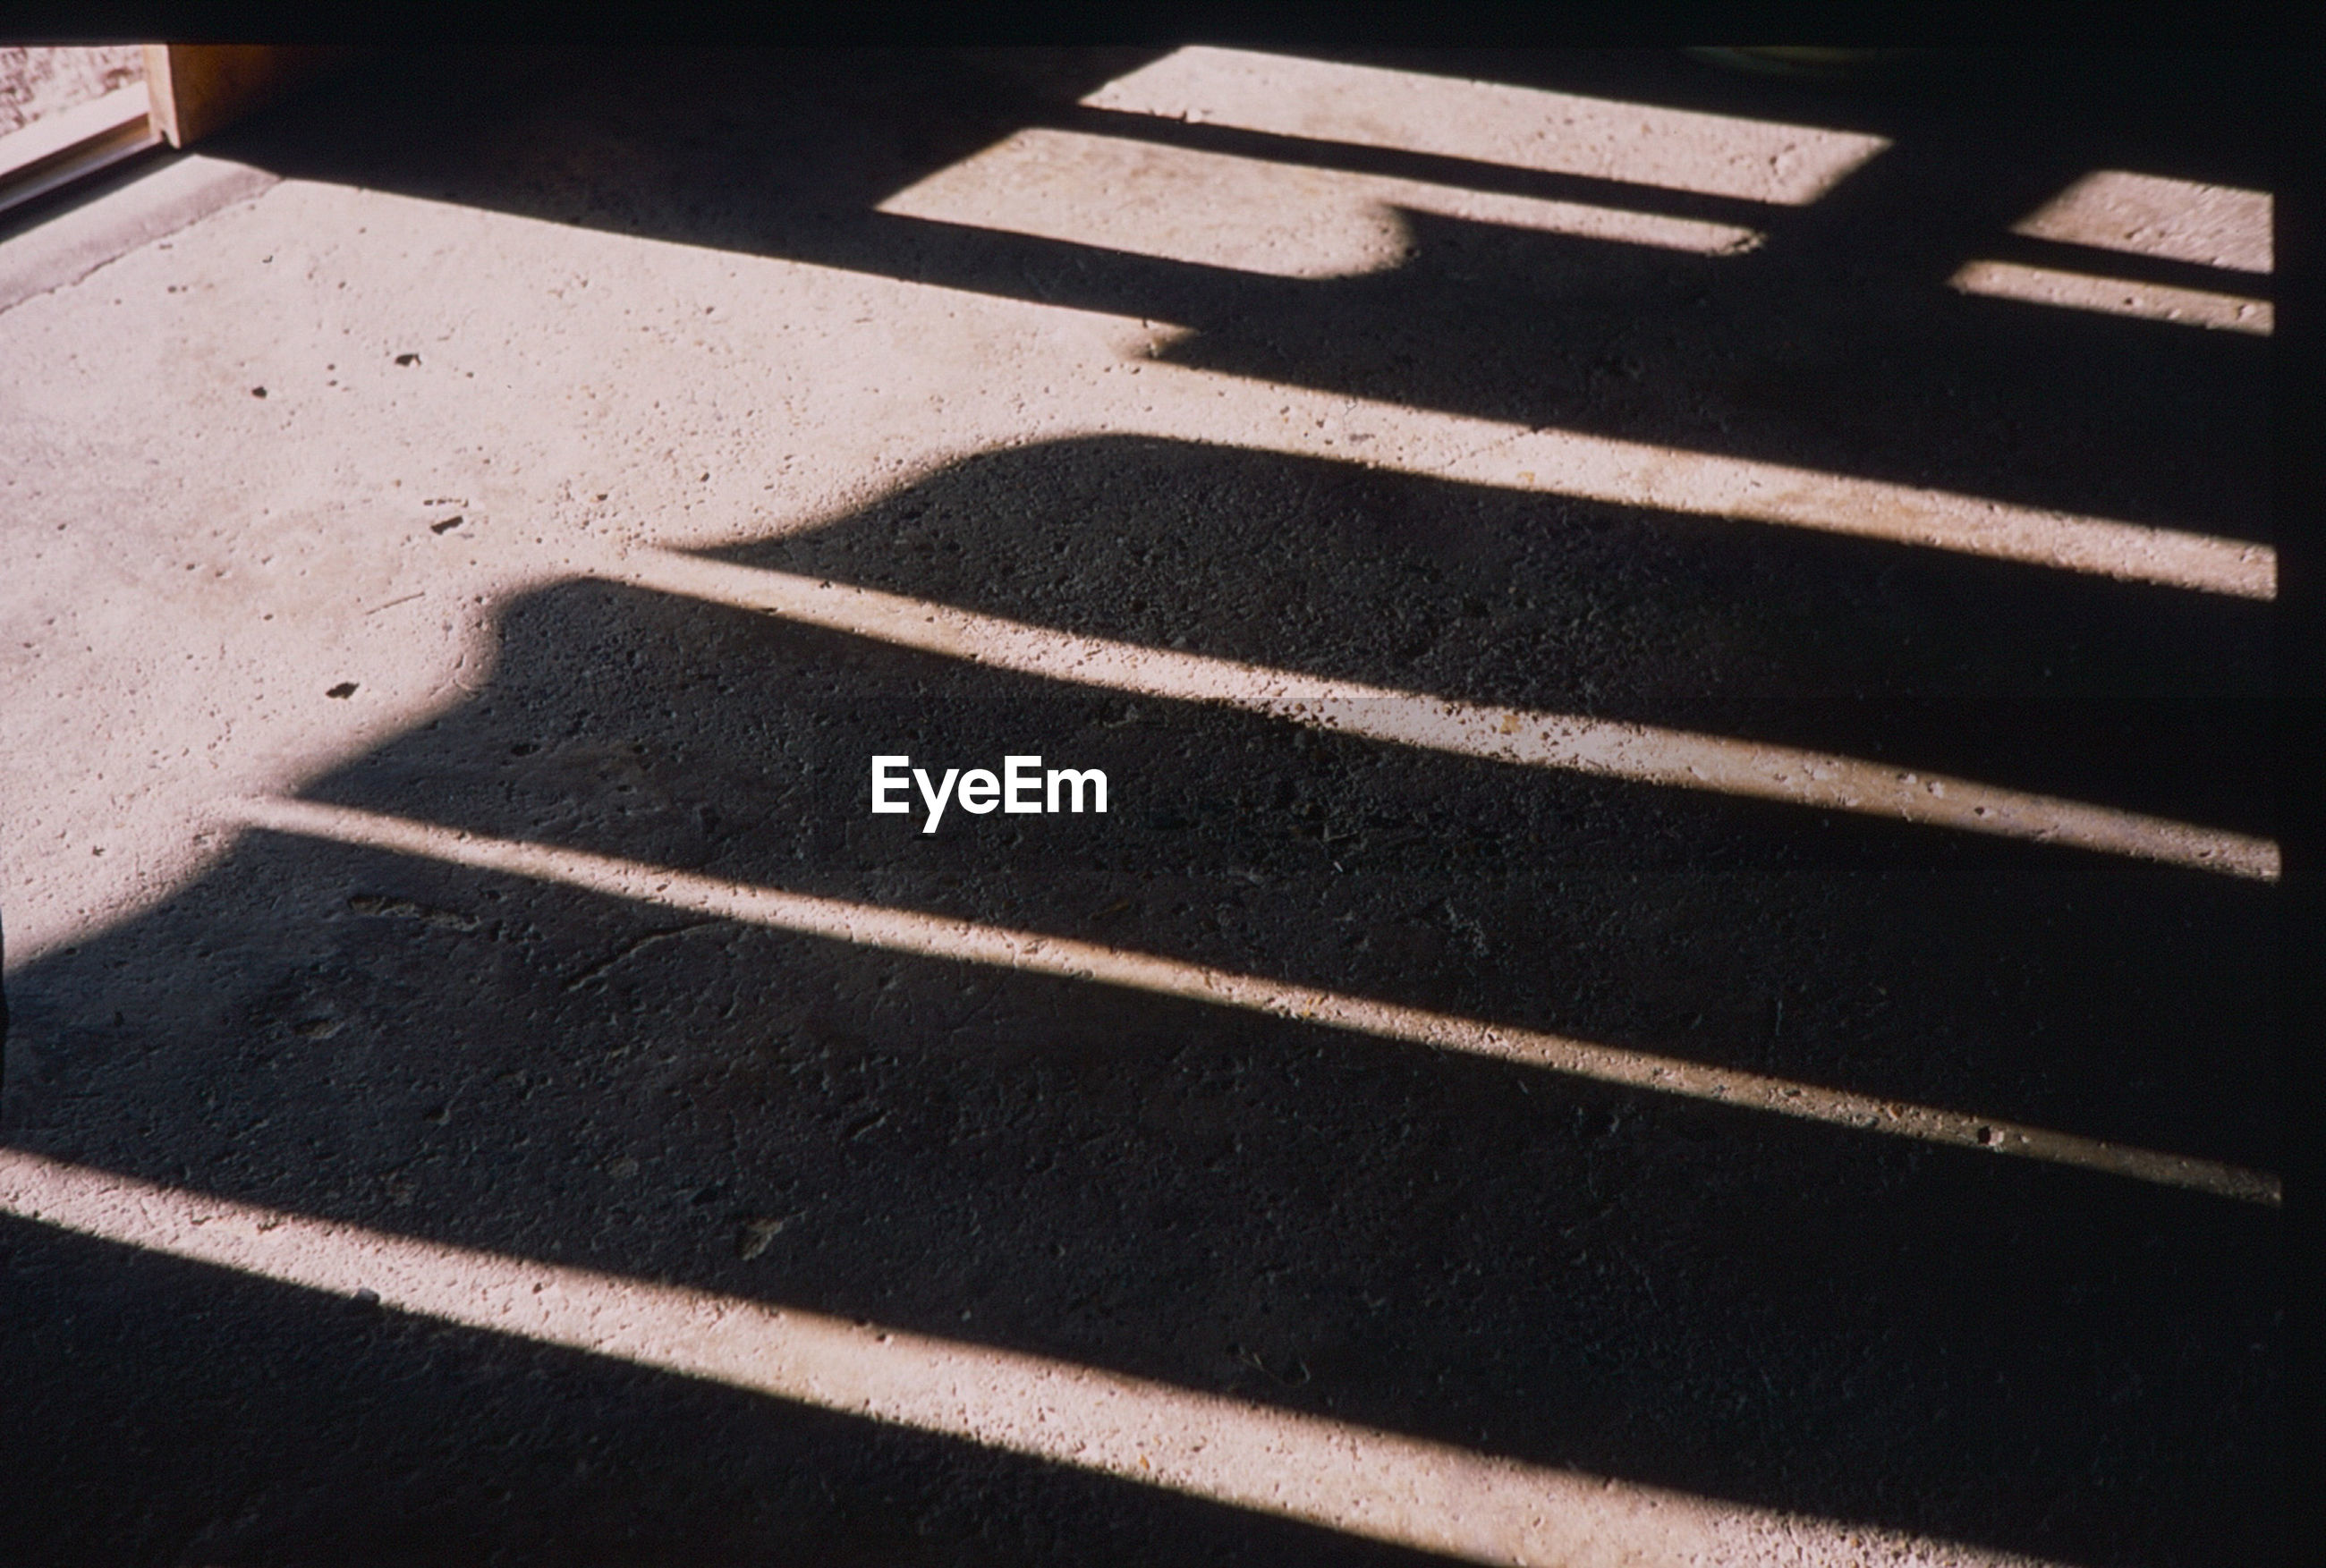 shadow, sunlight, high angle view, day, no people, outdoors, close-up